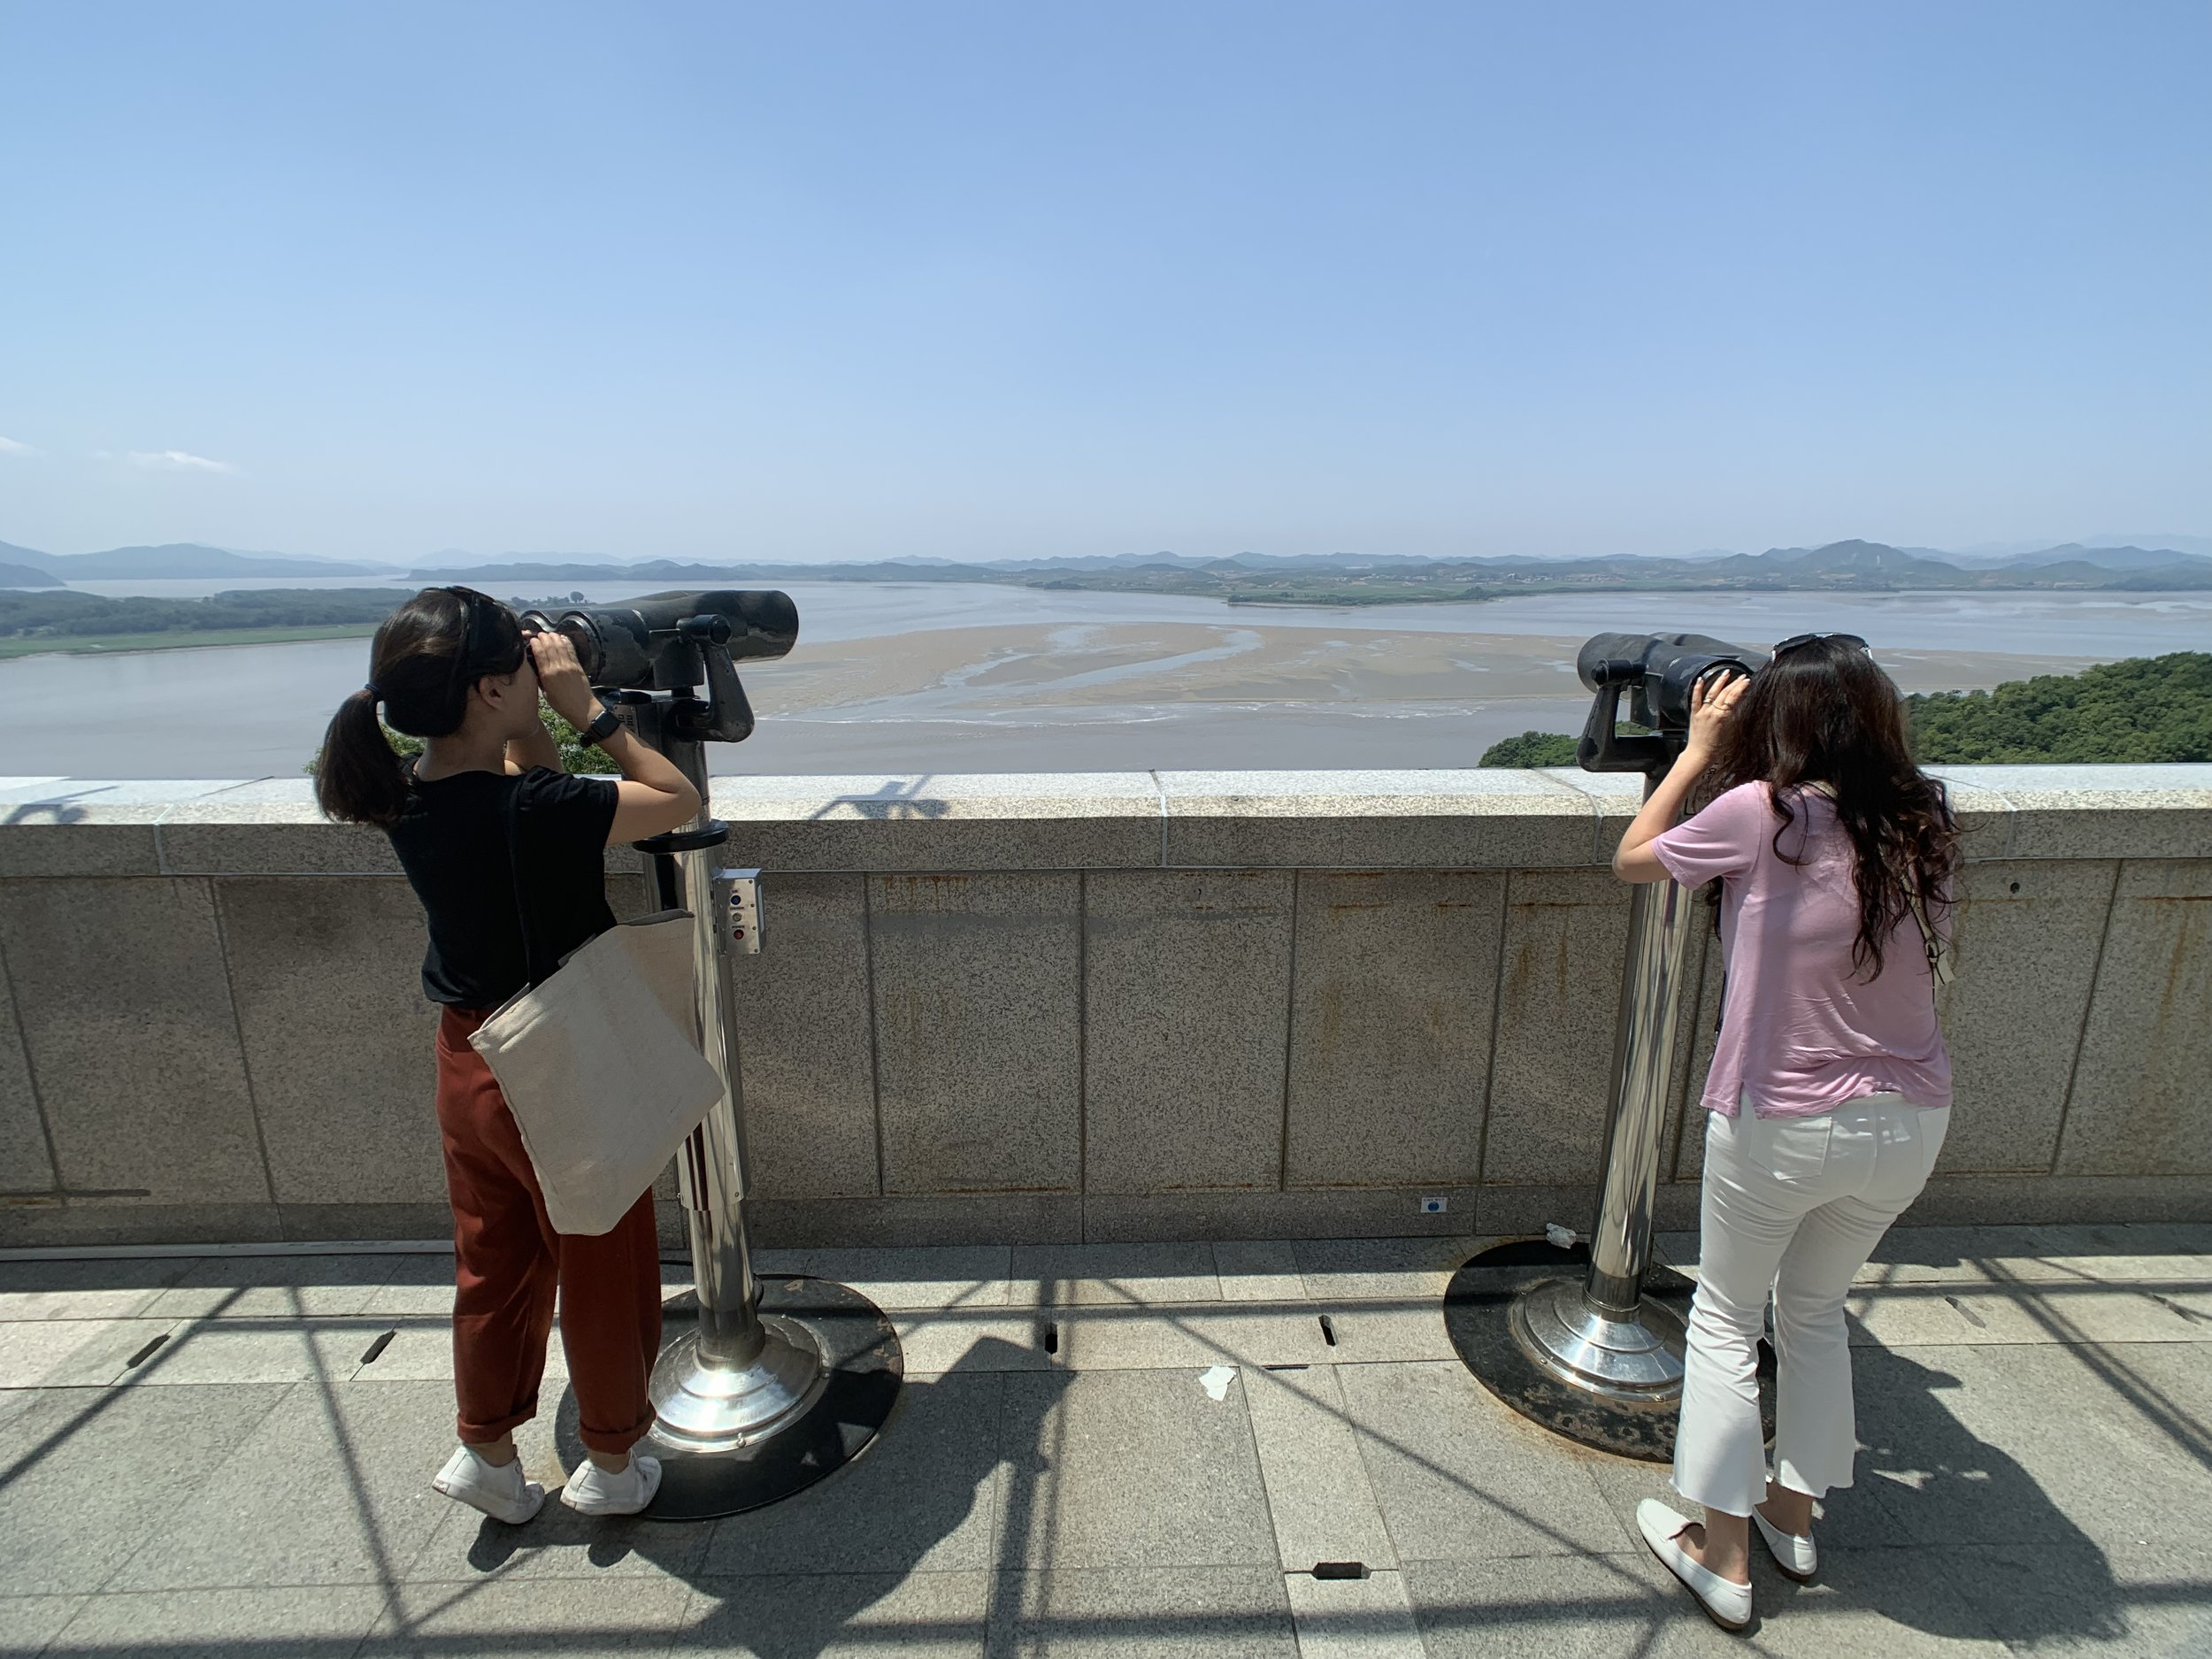 Looking at North Korea across the waters through the binoculars